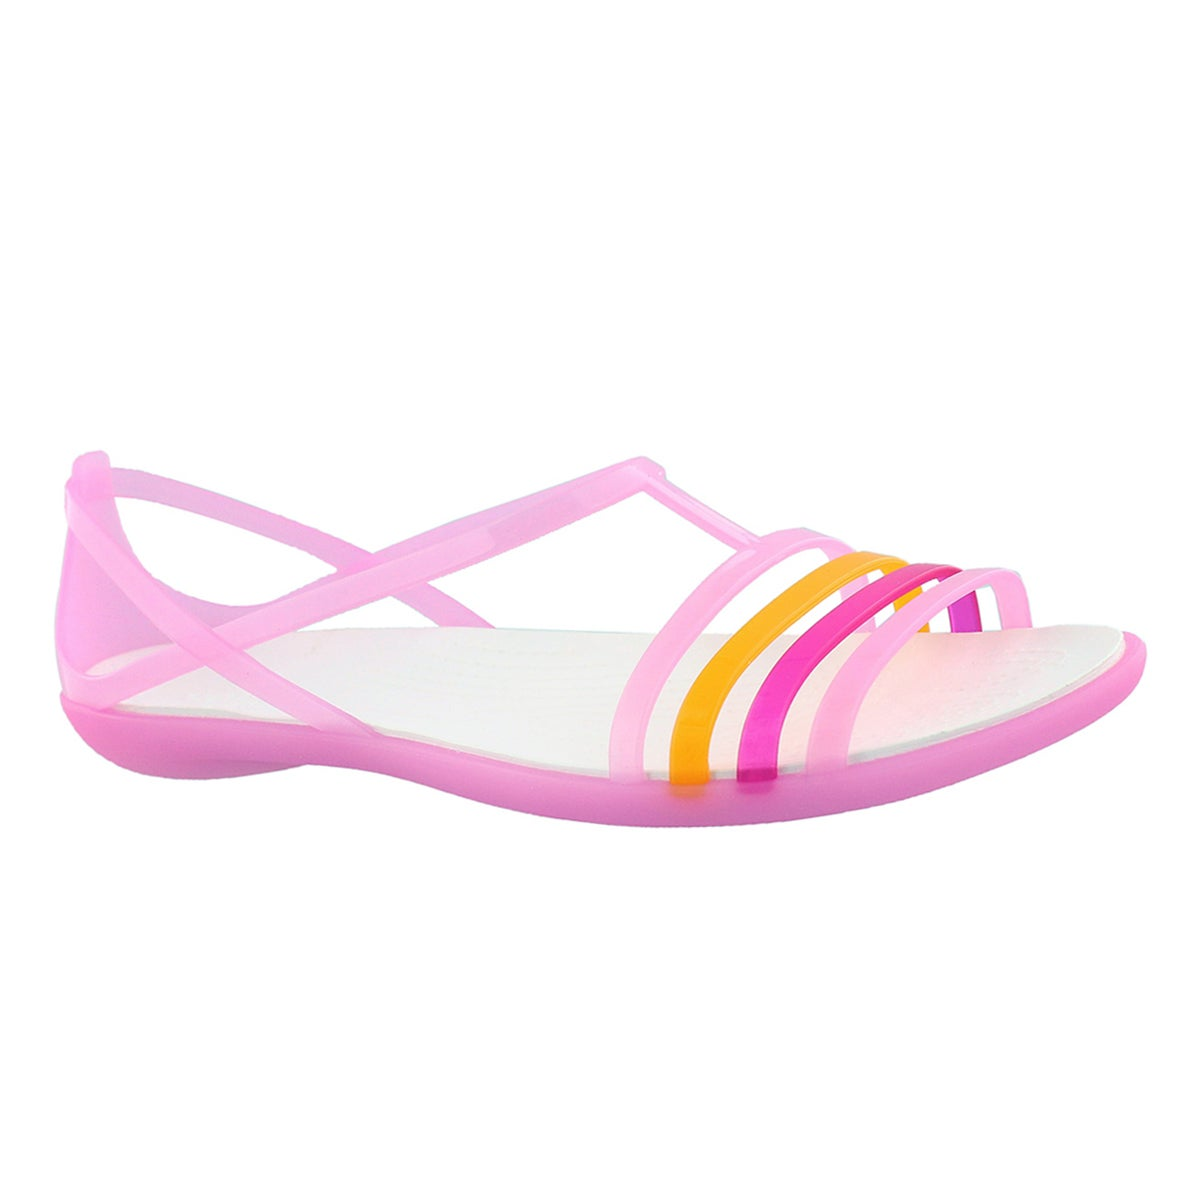 Women's ISABELLA carnation/white sandals